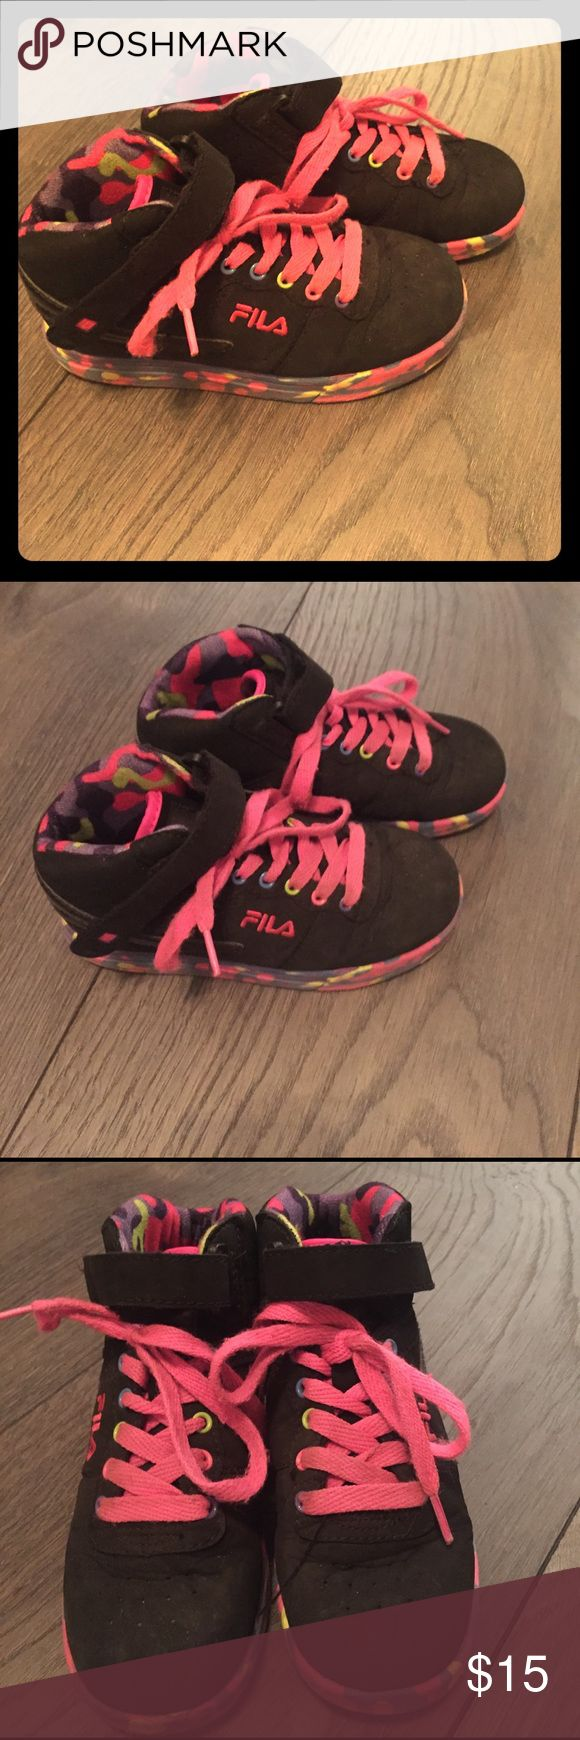 Fila girls high top sneakers sz 13 In nice preowned condition.  Wear is shown in pics.  They still look great and have lots of wear left in them.  I always accept reasonable offers. ☺☺ Fila Shoes Sneakers